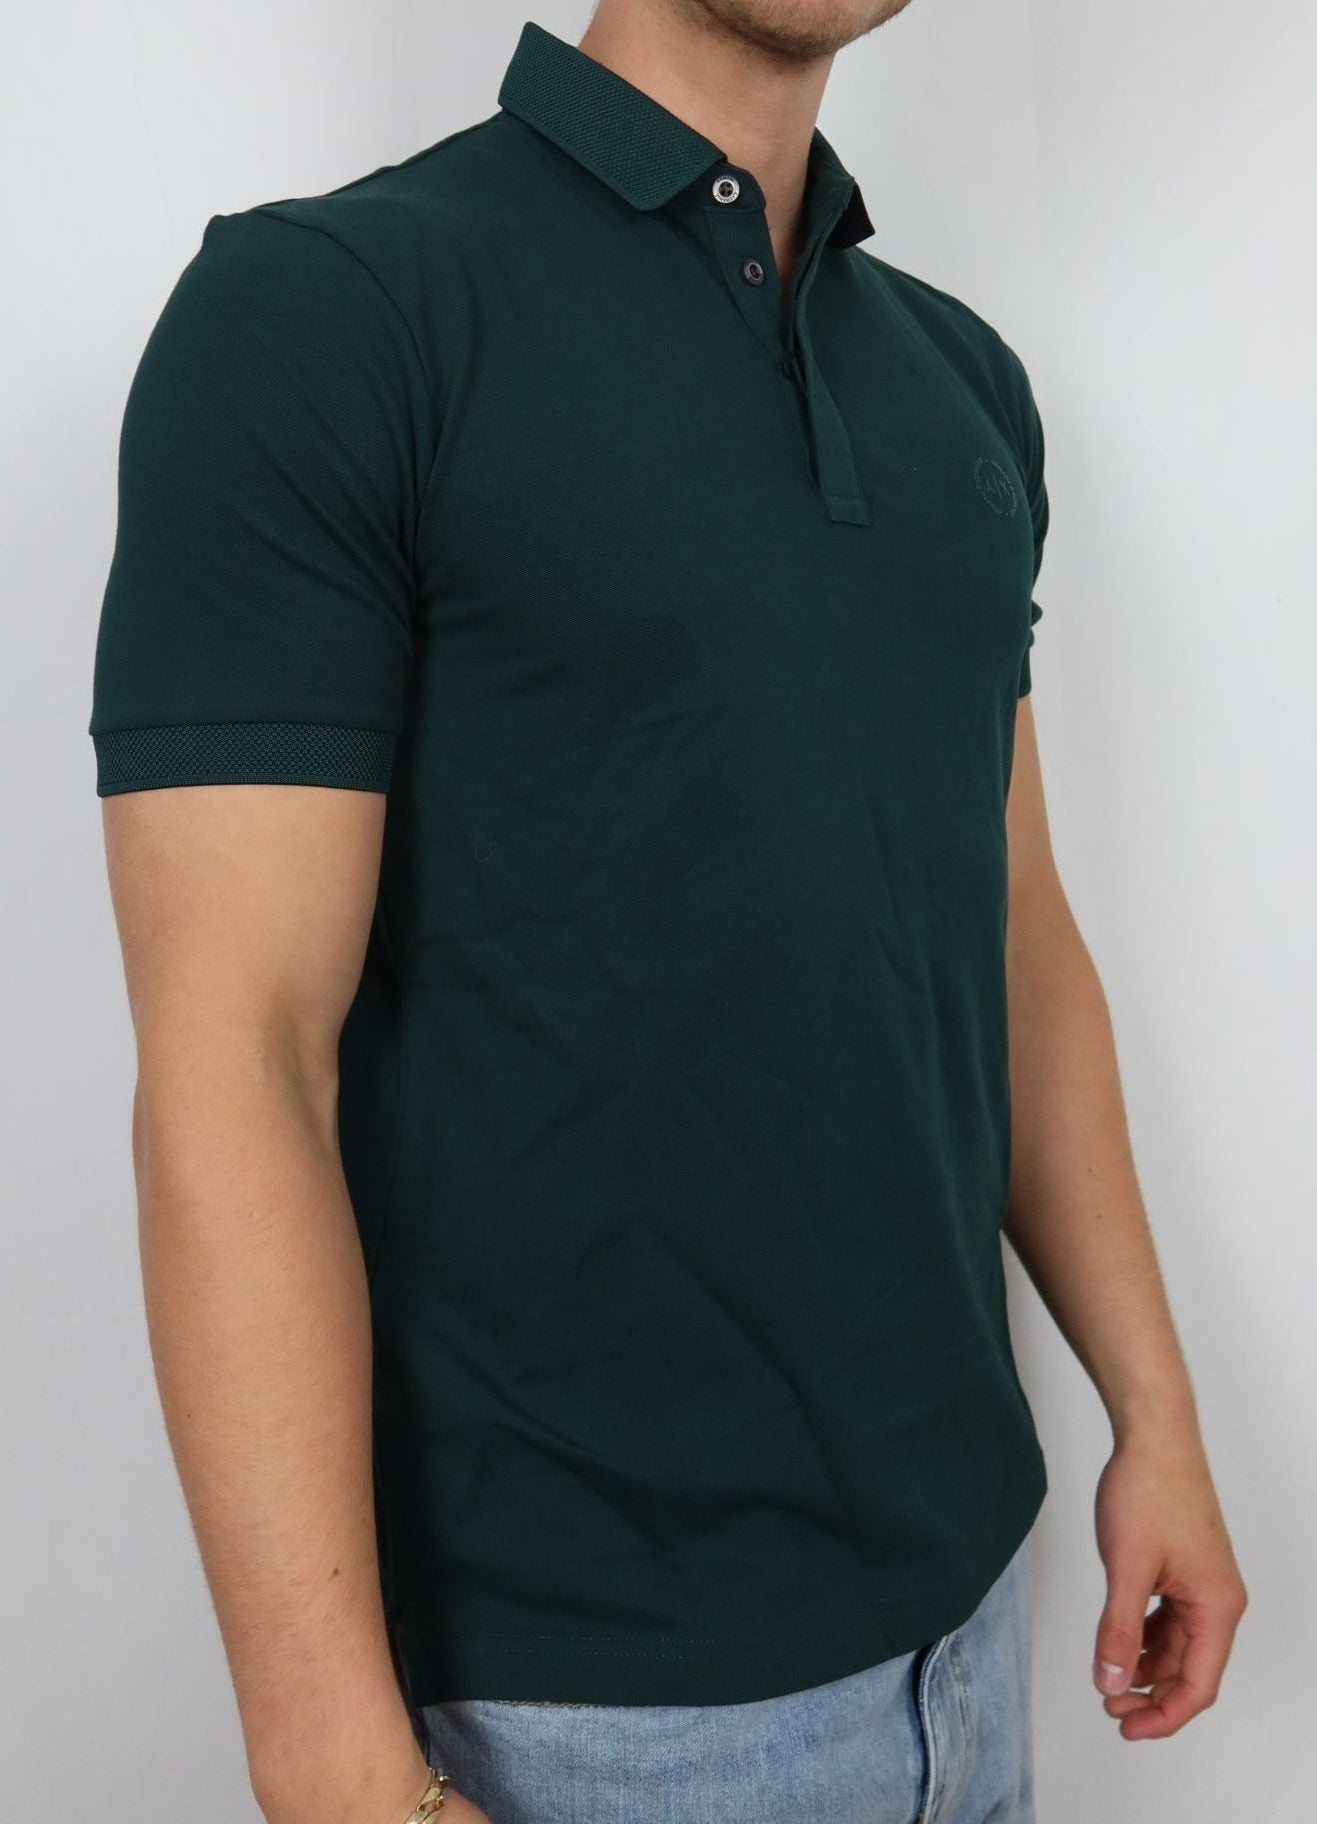 Jungle Green AX collar tee